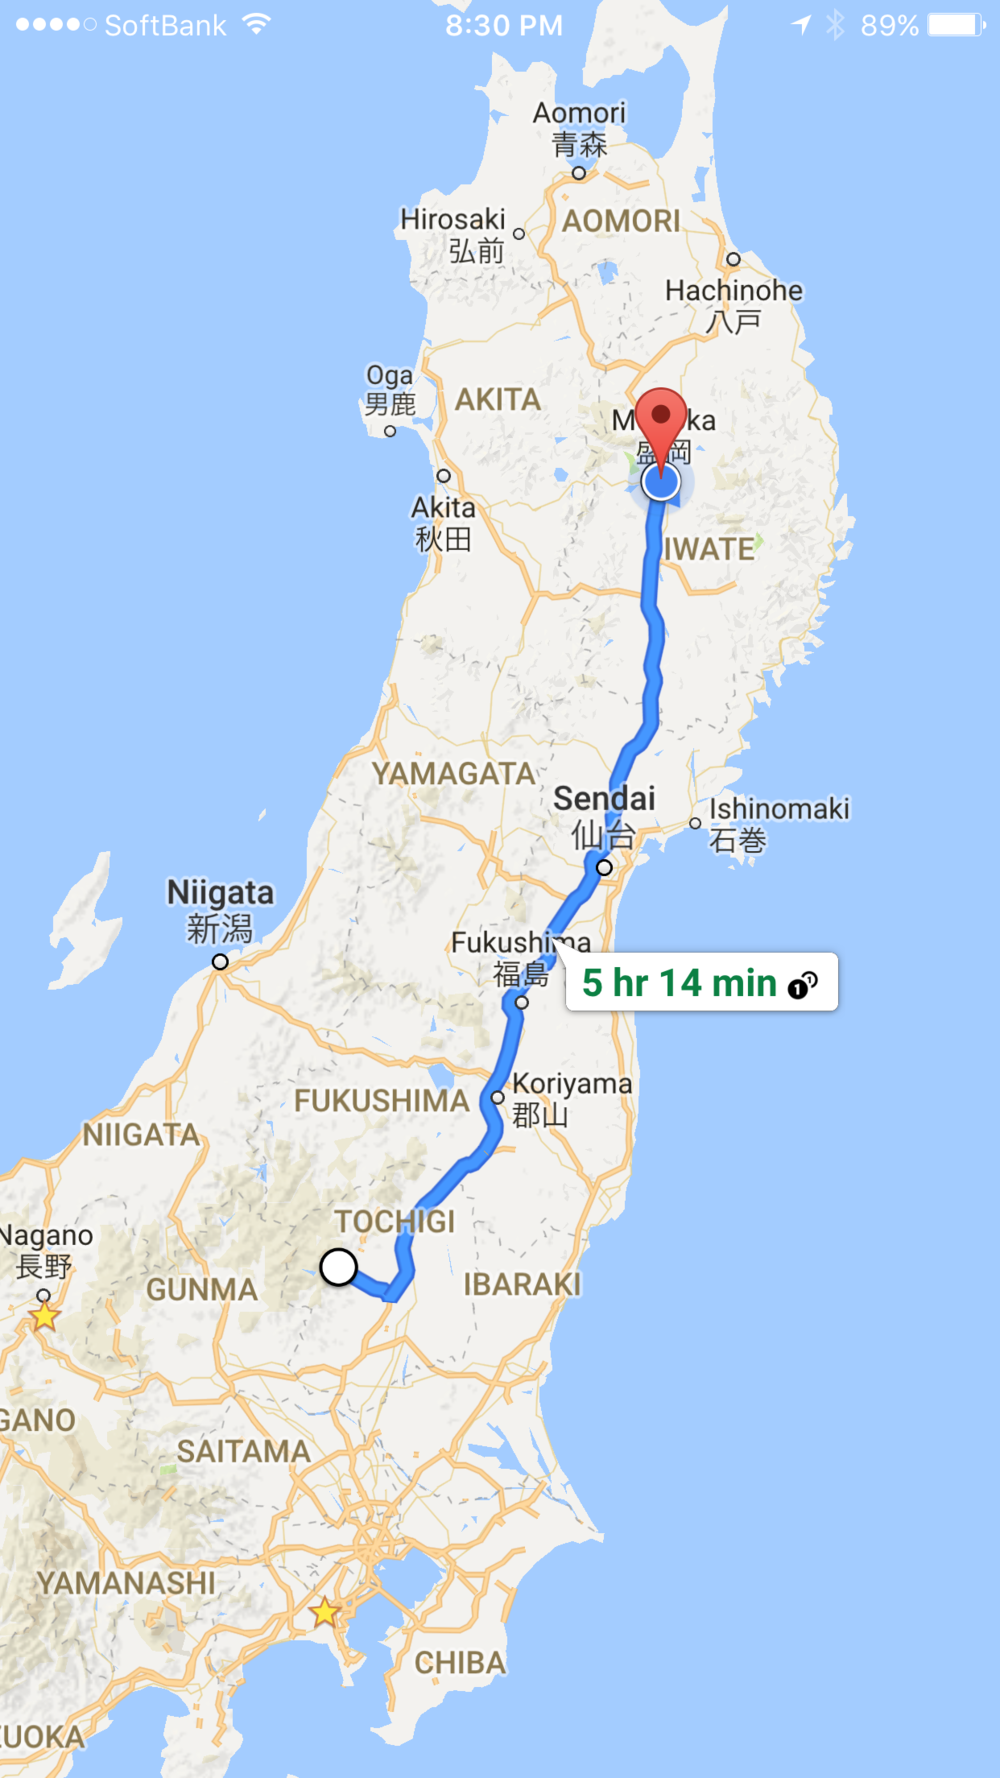 Nikko, Tochigi to Morioka, Iwate, via Sendai, Miyagi: I'm getting Japanese Superchargers 11 and 12 today. 😃